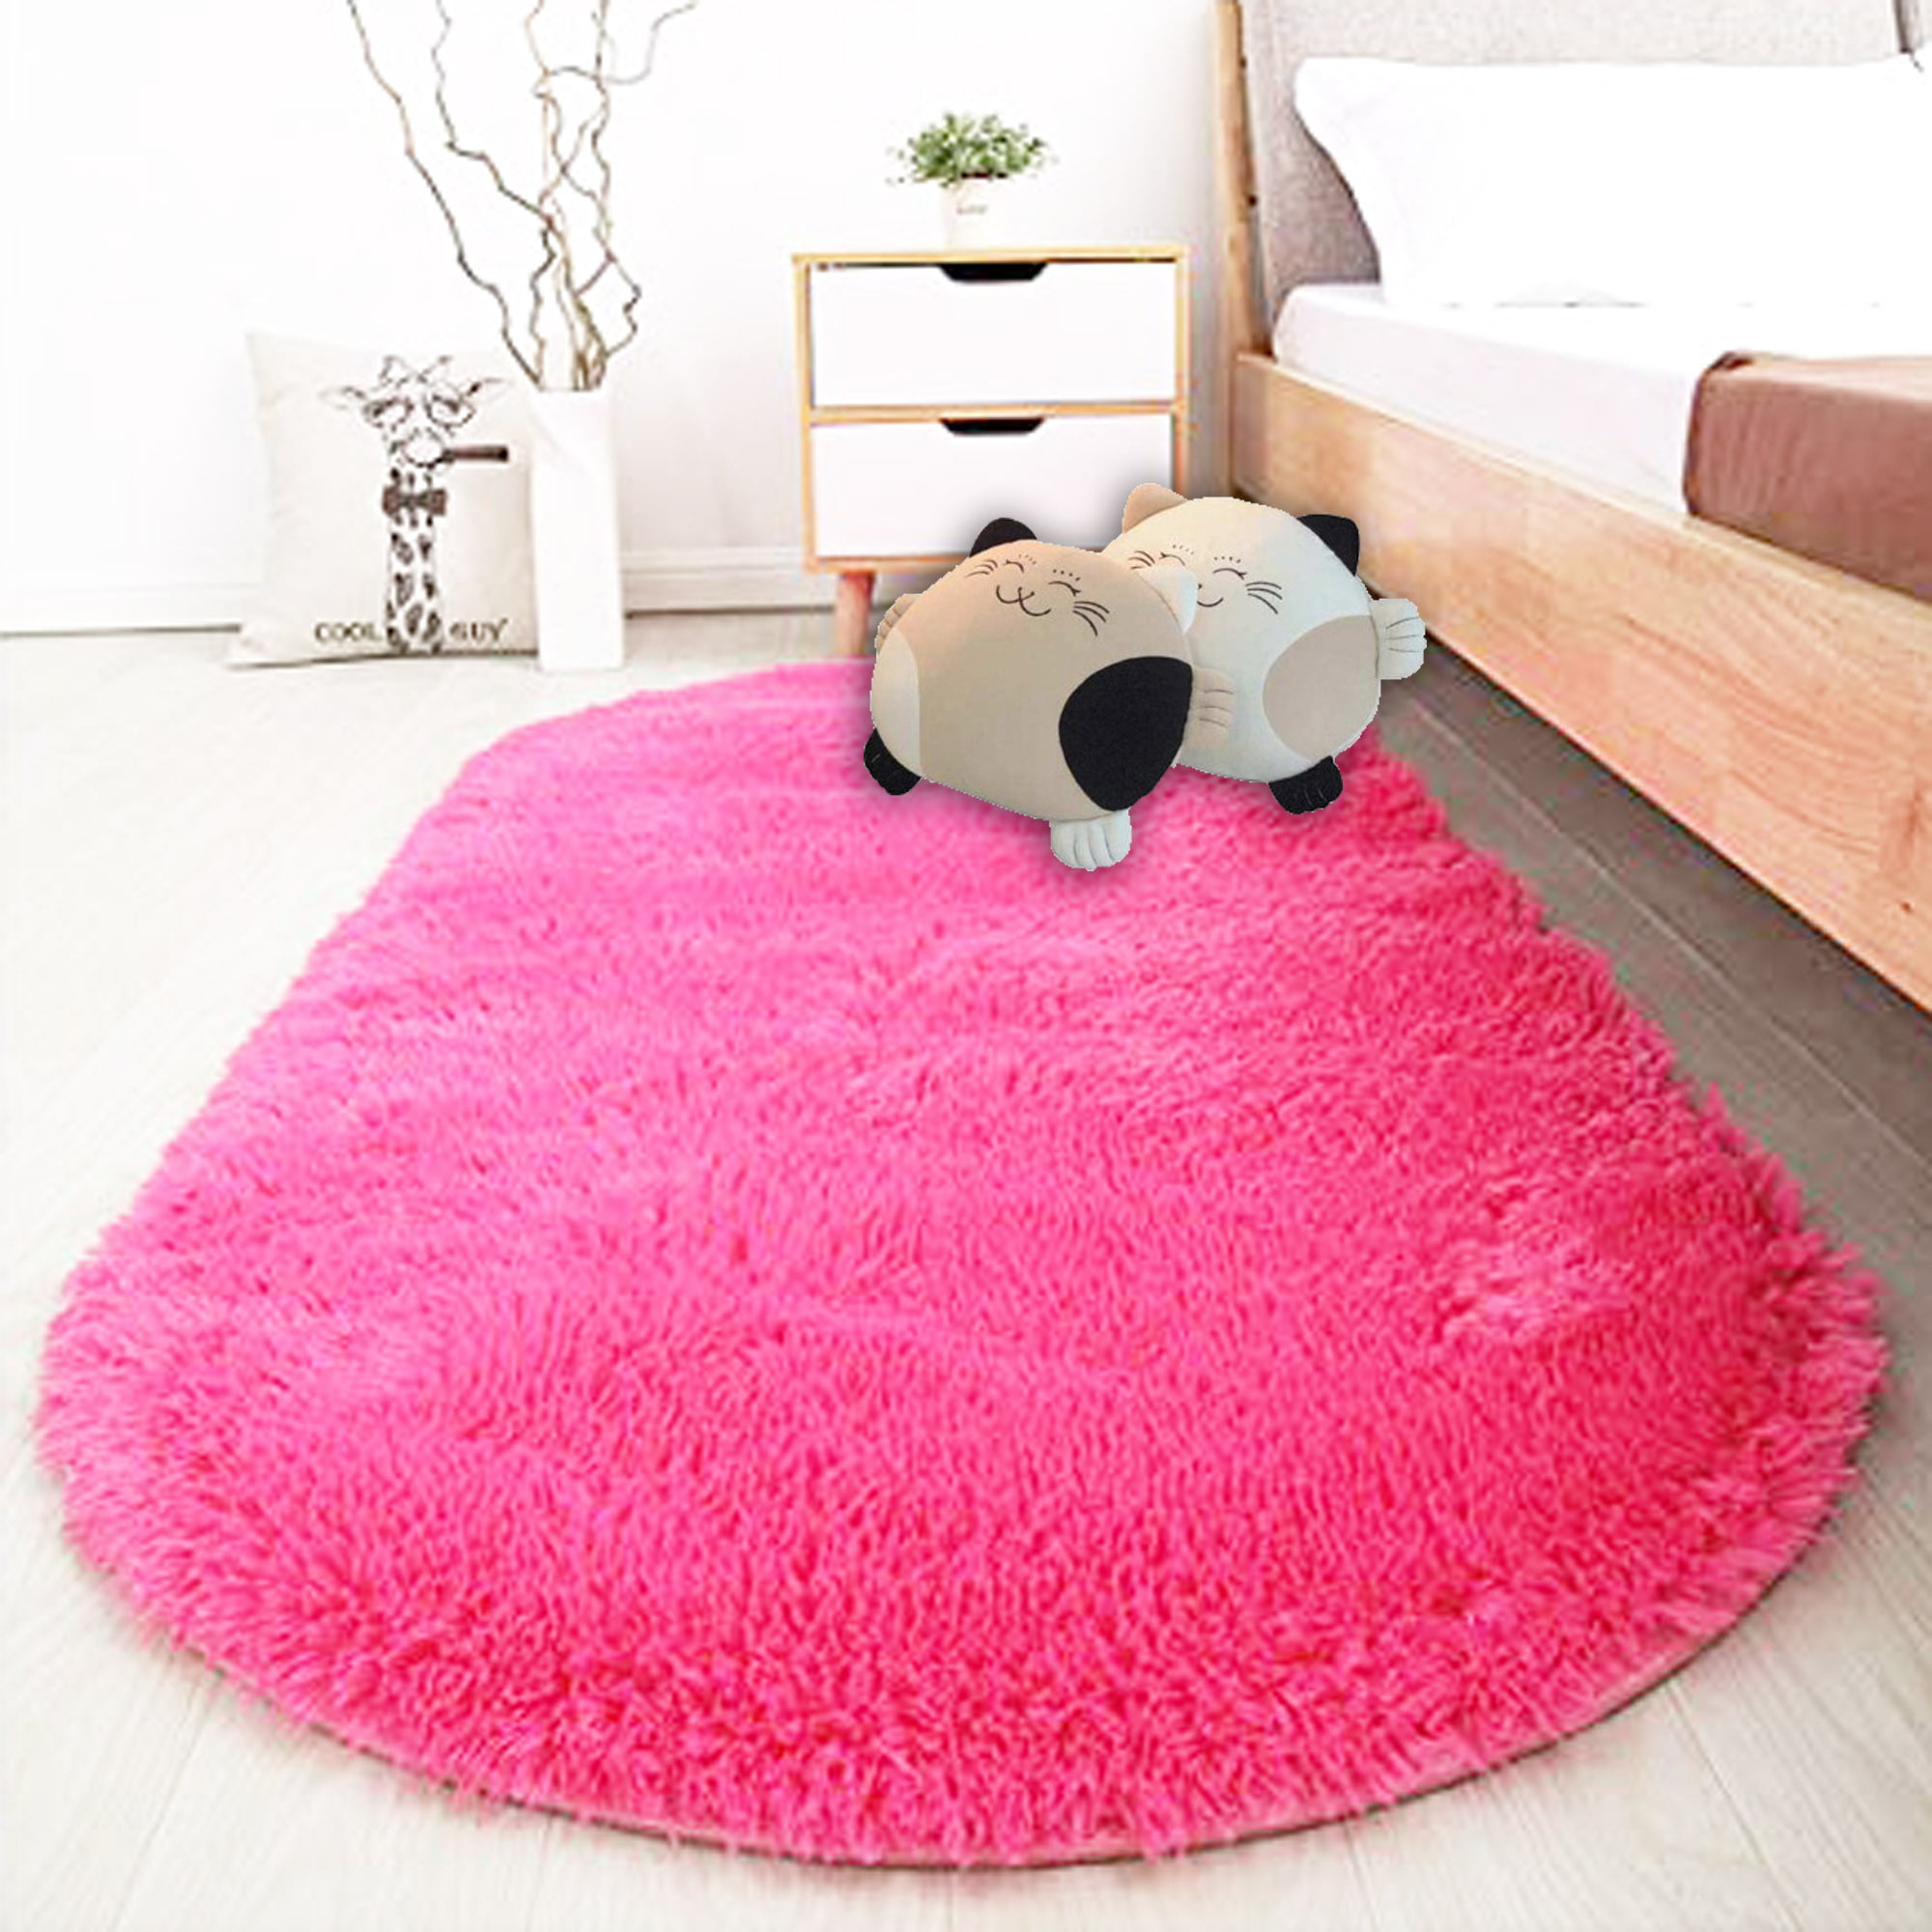 nk home 314 x 649 inches 80 x 165cm fluffy area rugs